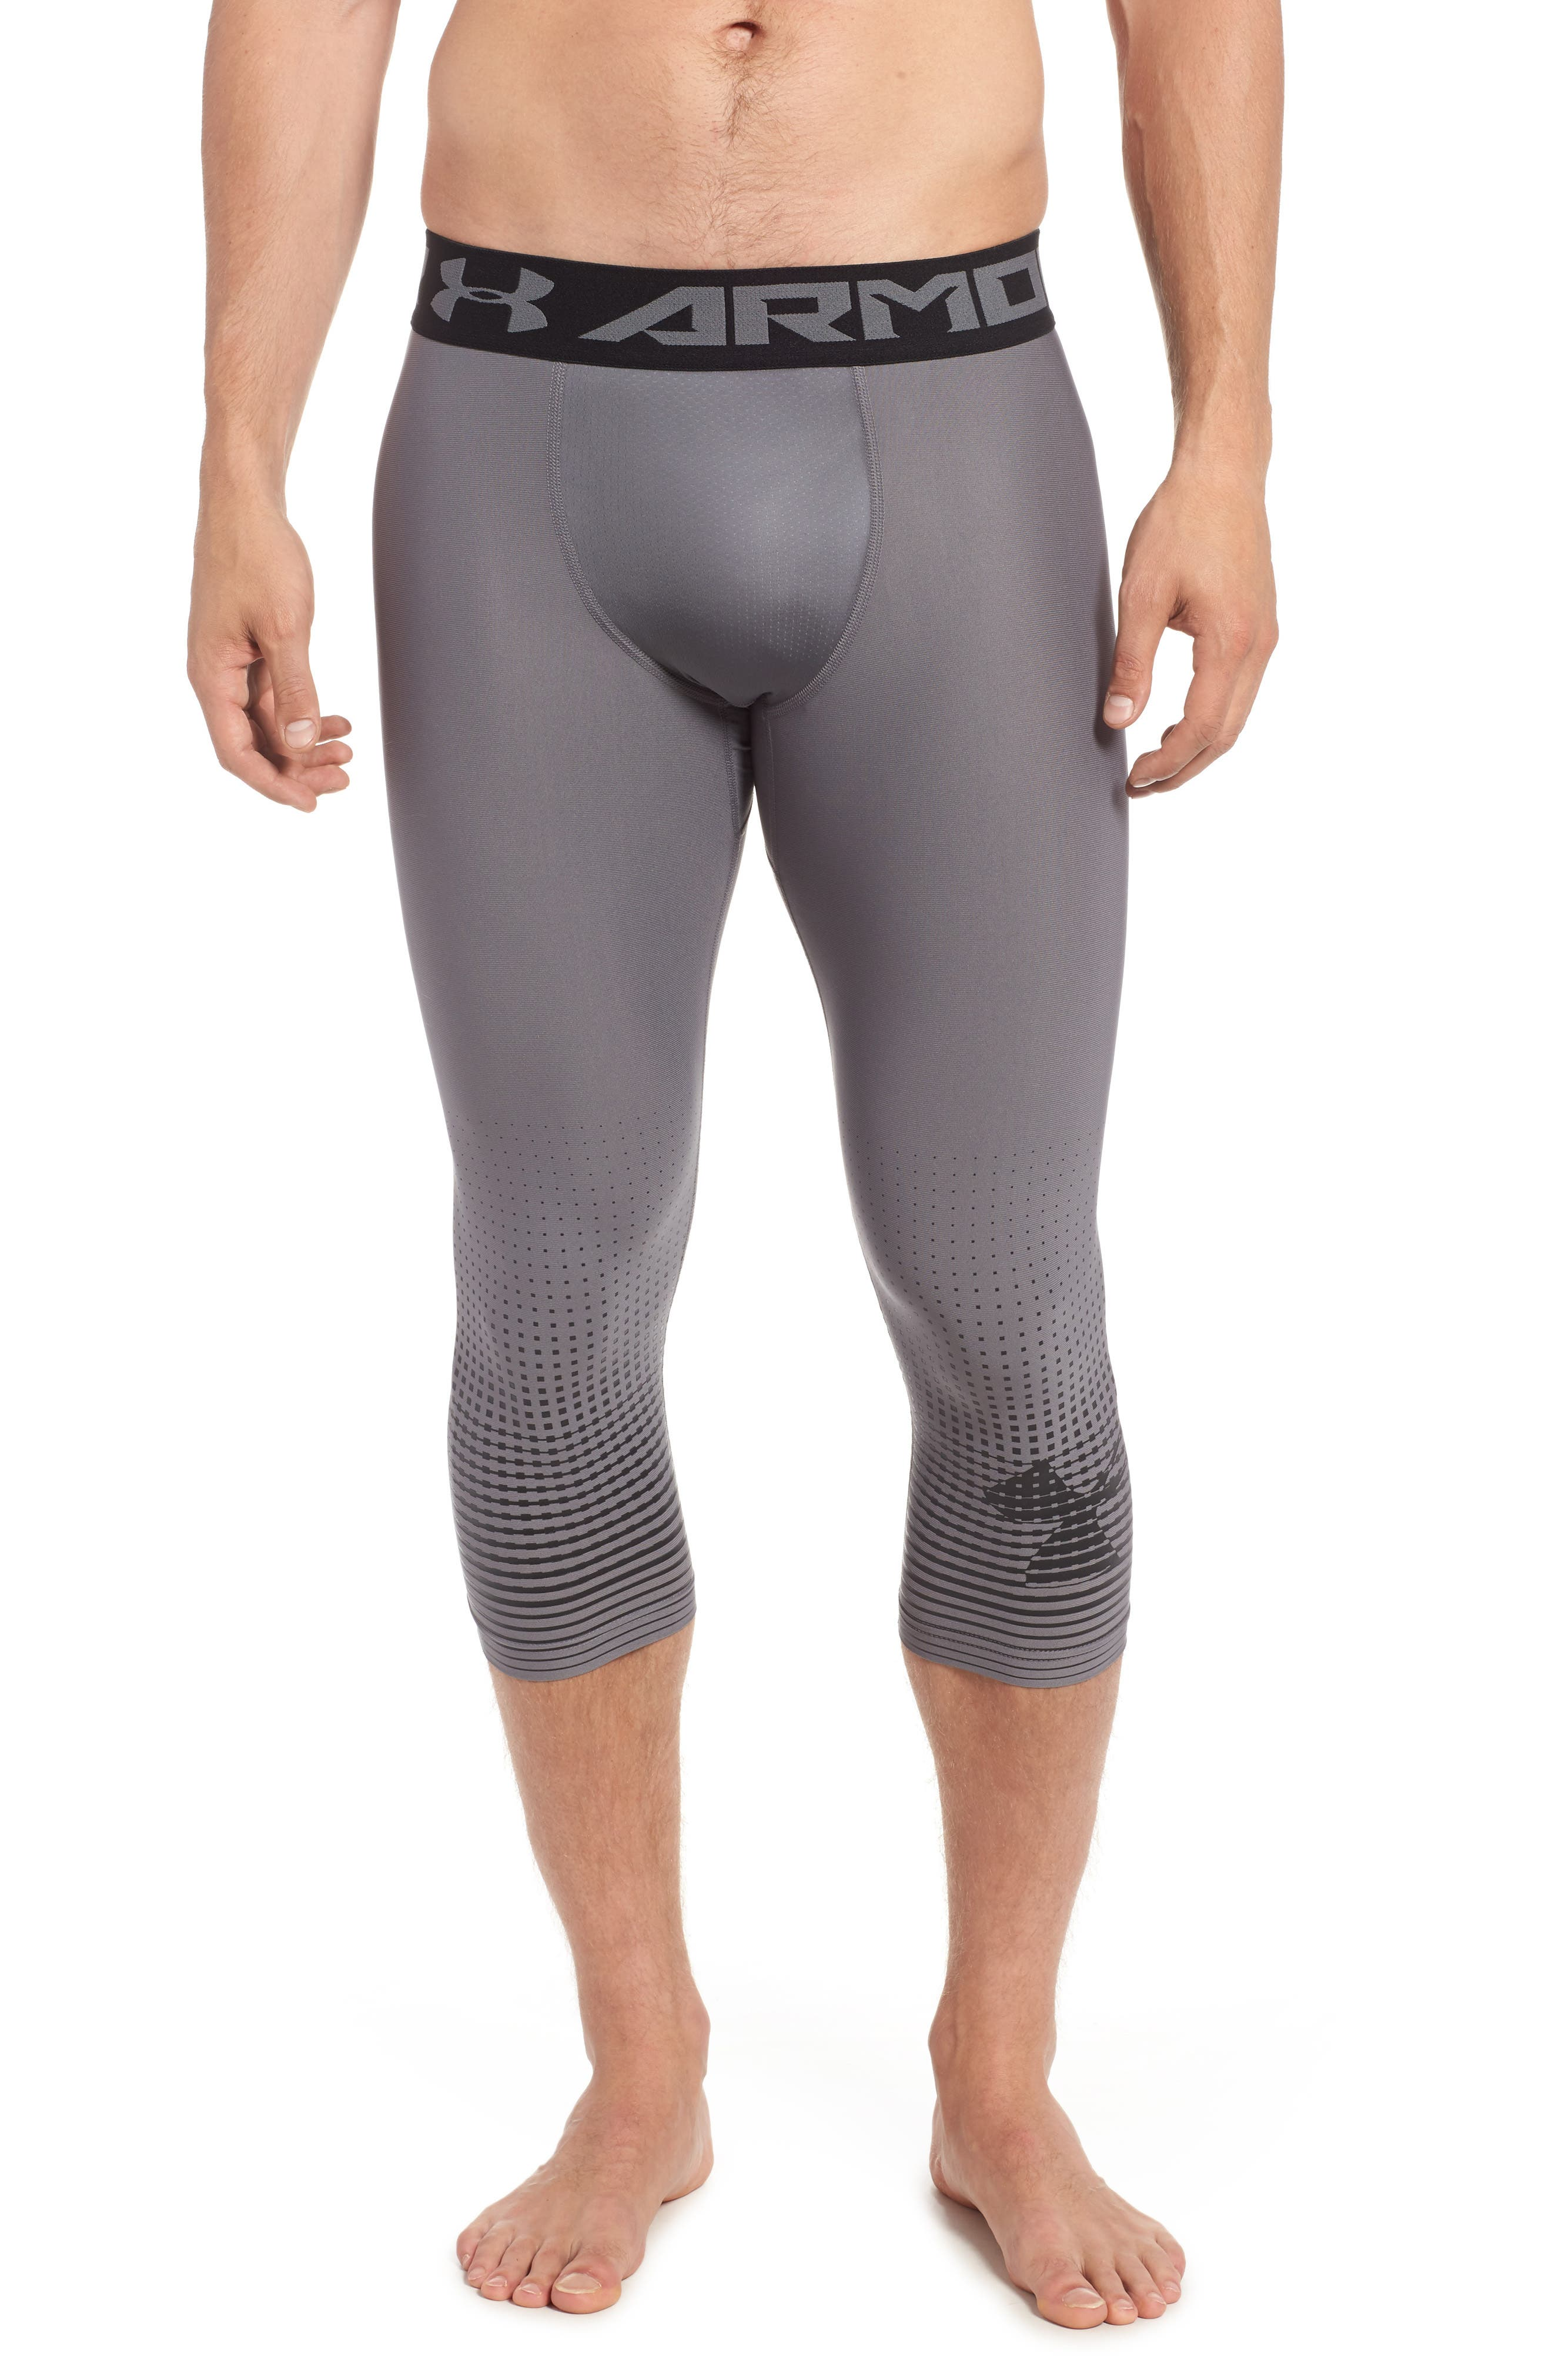 Under Armour Three Quarter Compression Pants